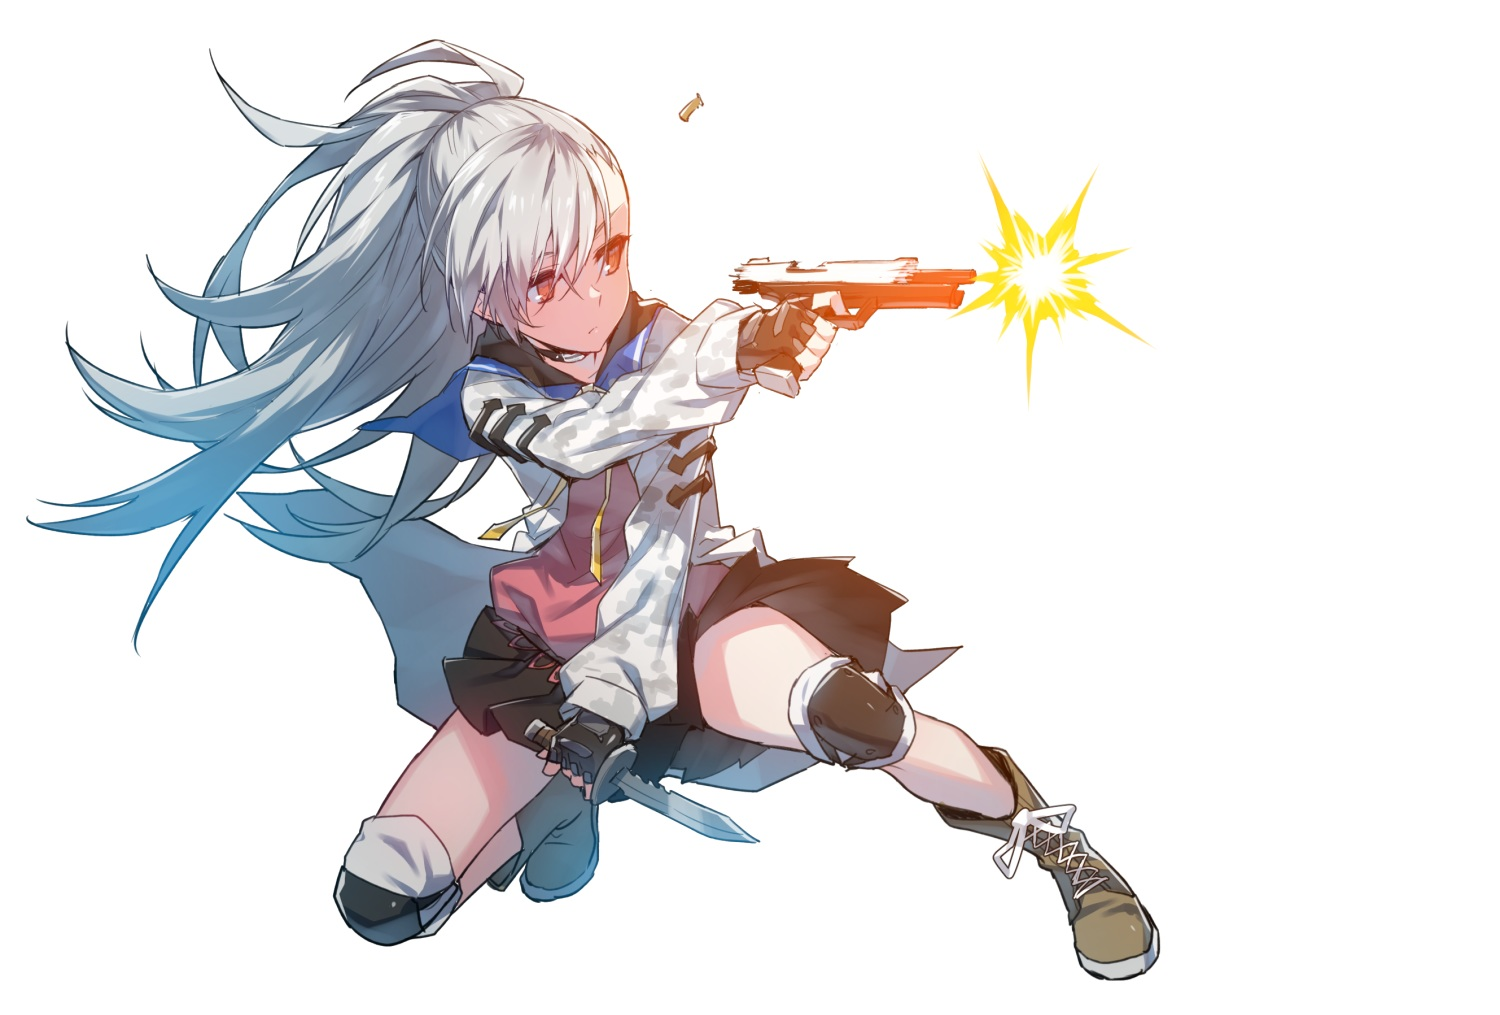 boots choker closers gloves gray_hair gun knife long_hair ponytail red_eyes school_uniform supernew tina_(closers) weapon white